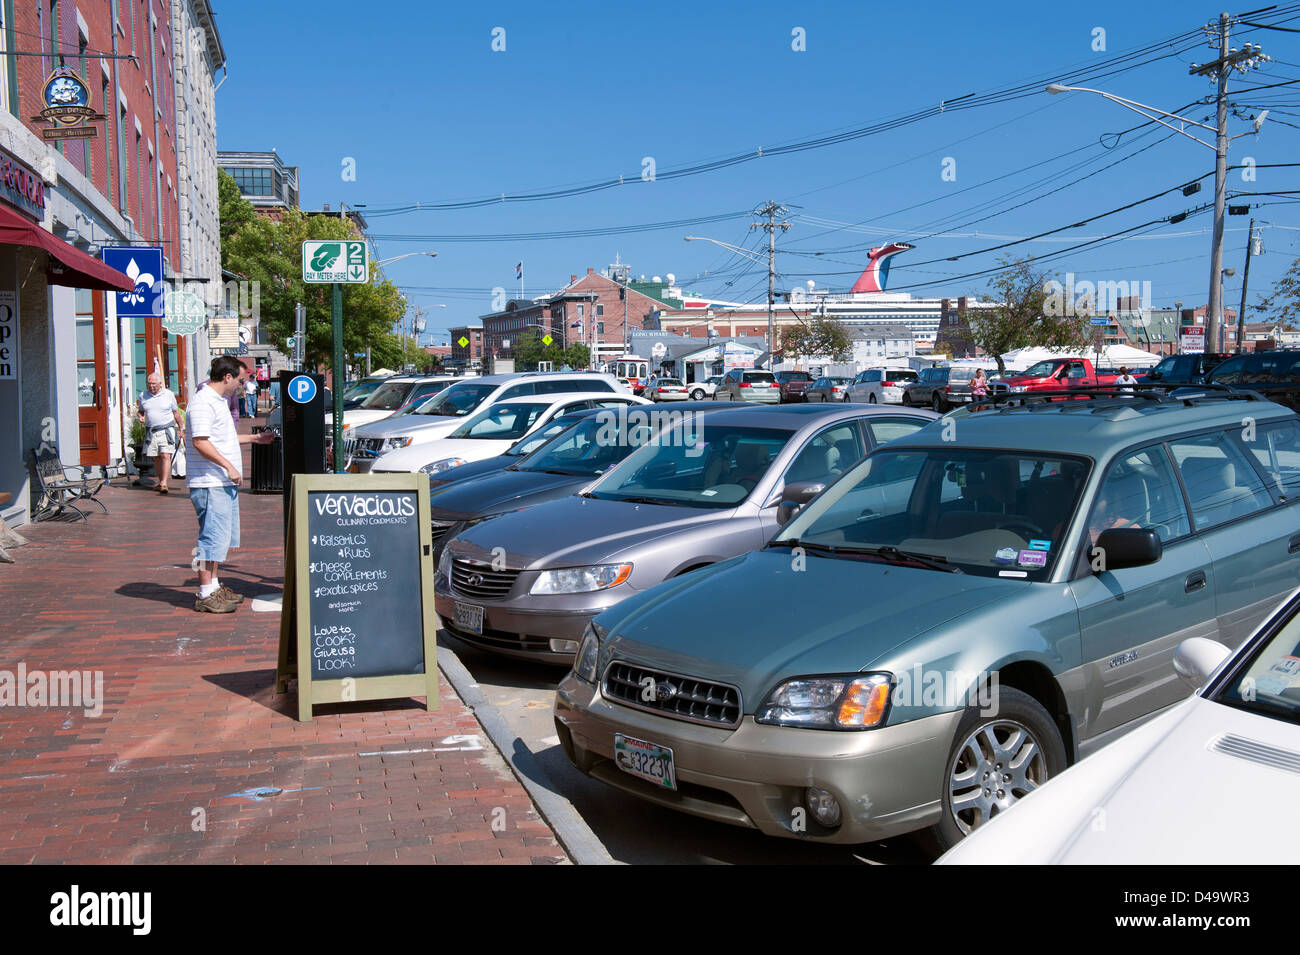 Man buying a parking ticket from an automatic dispenser in downtown Portland, Maine, USA. Stock Photo